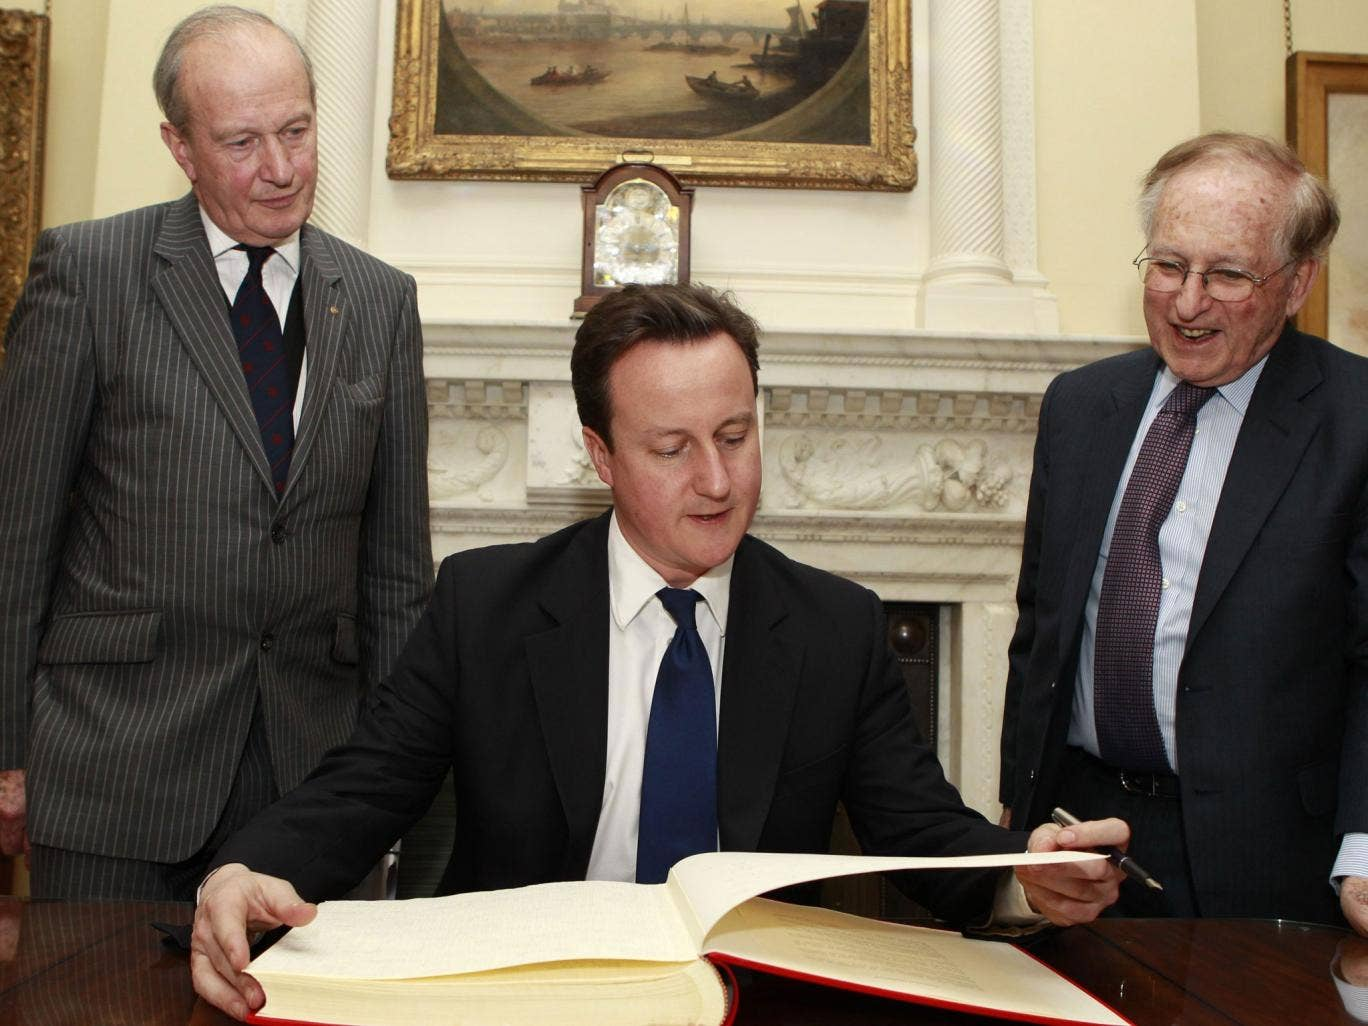 The Prime Minister in 2011 with Greville Janner to his right